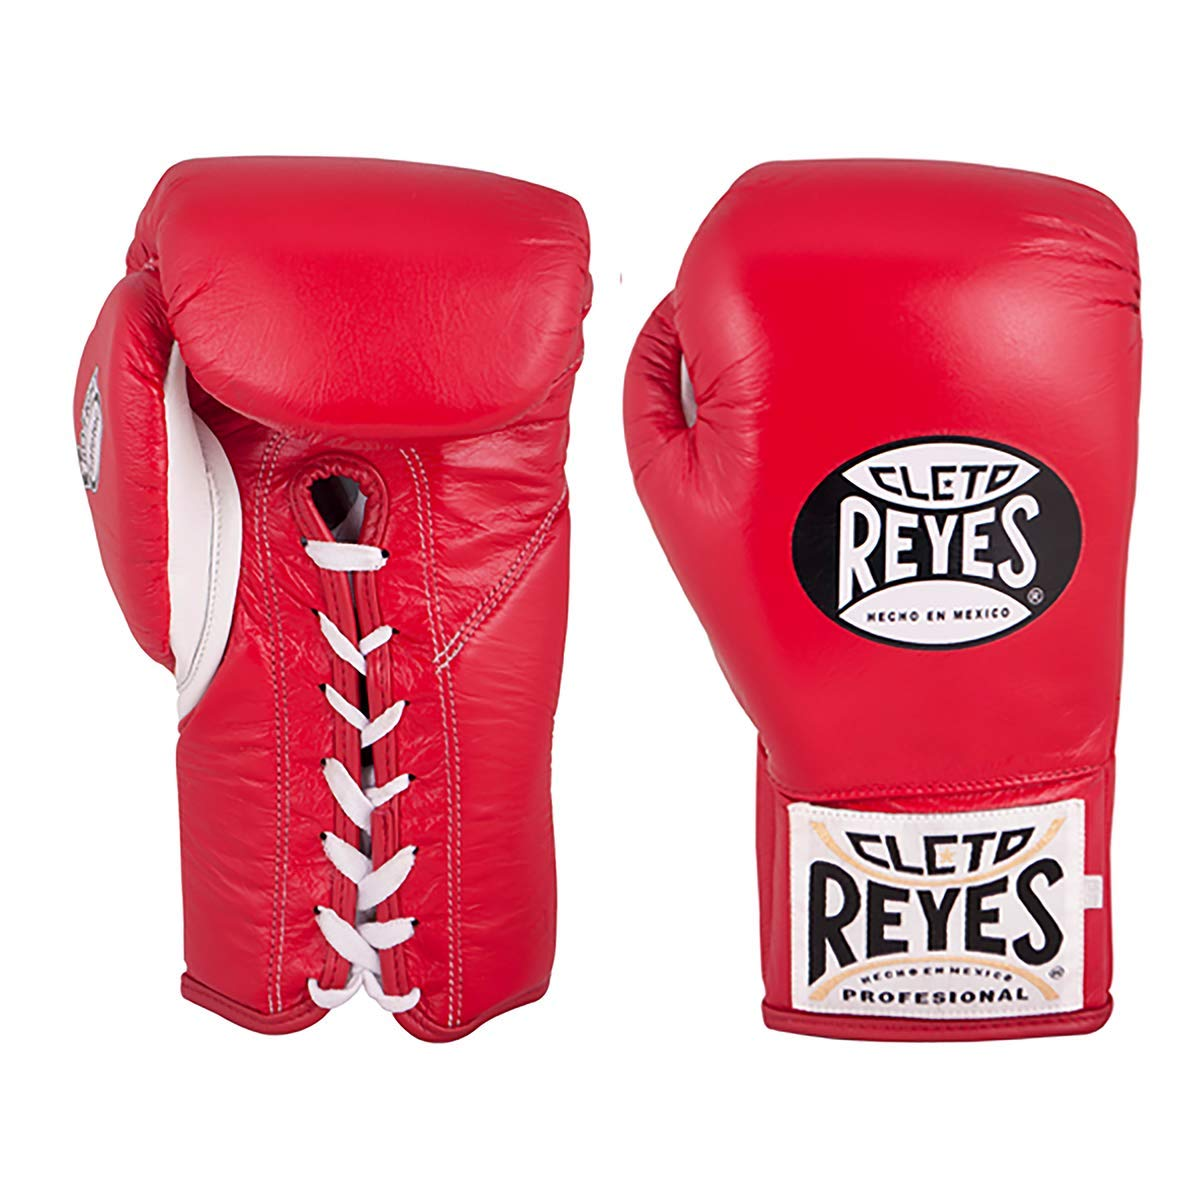 Cleto Reyes Official Safetec Gloves for Man and Woman